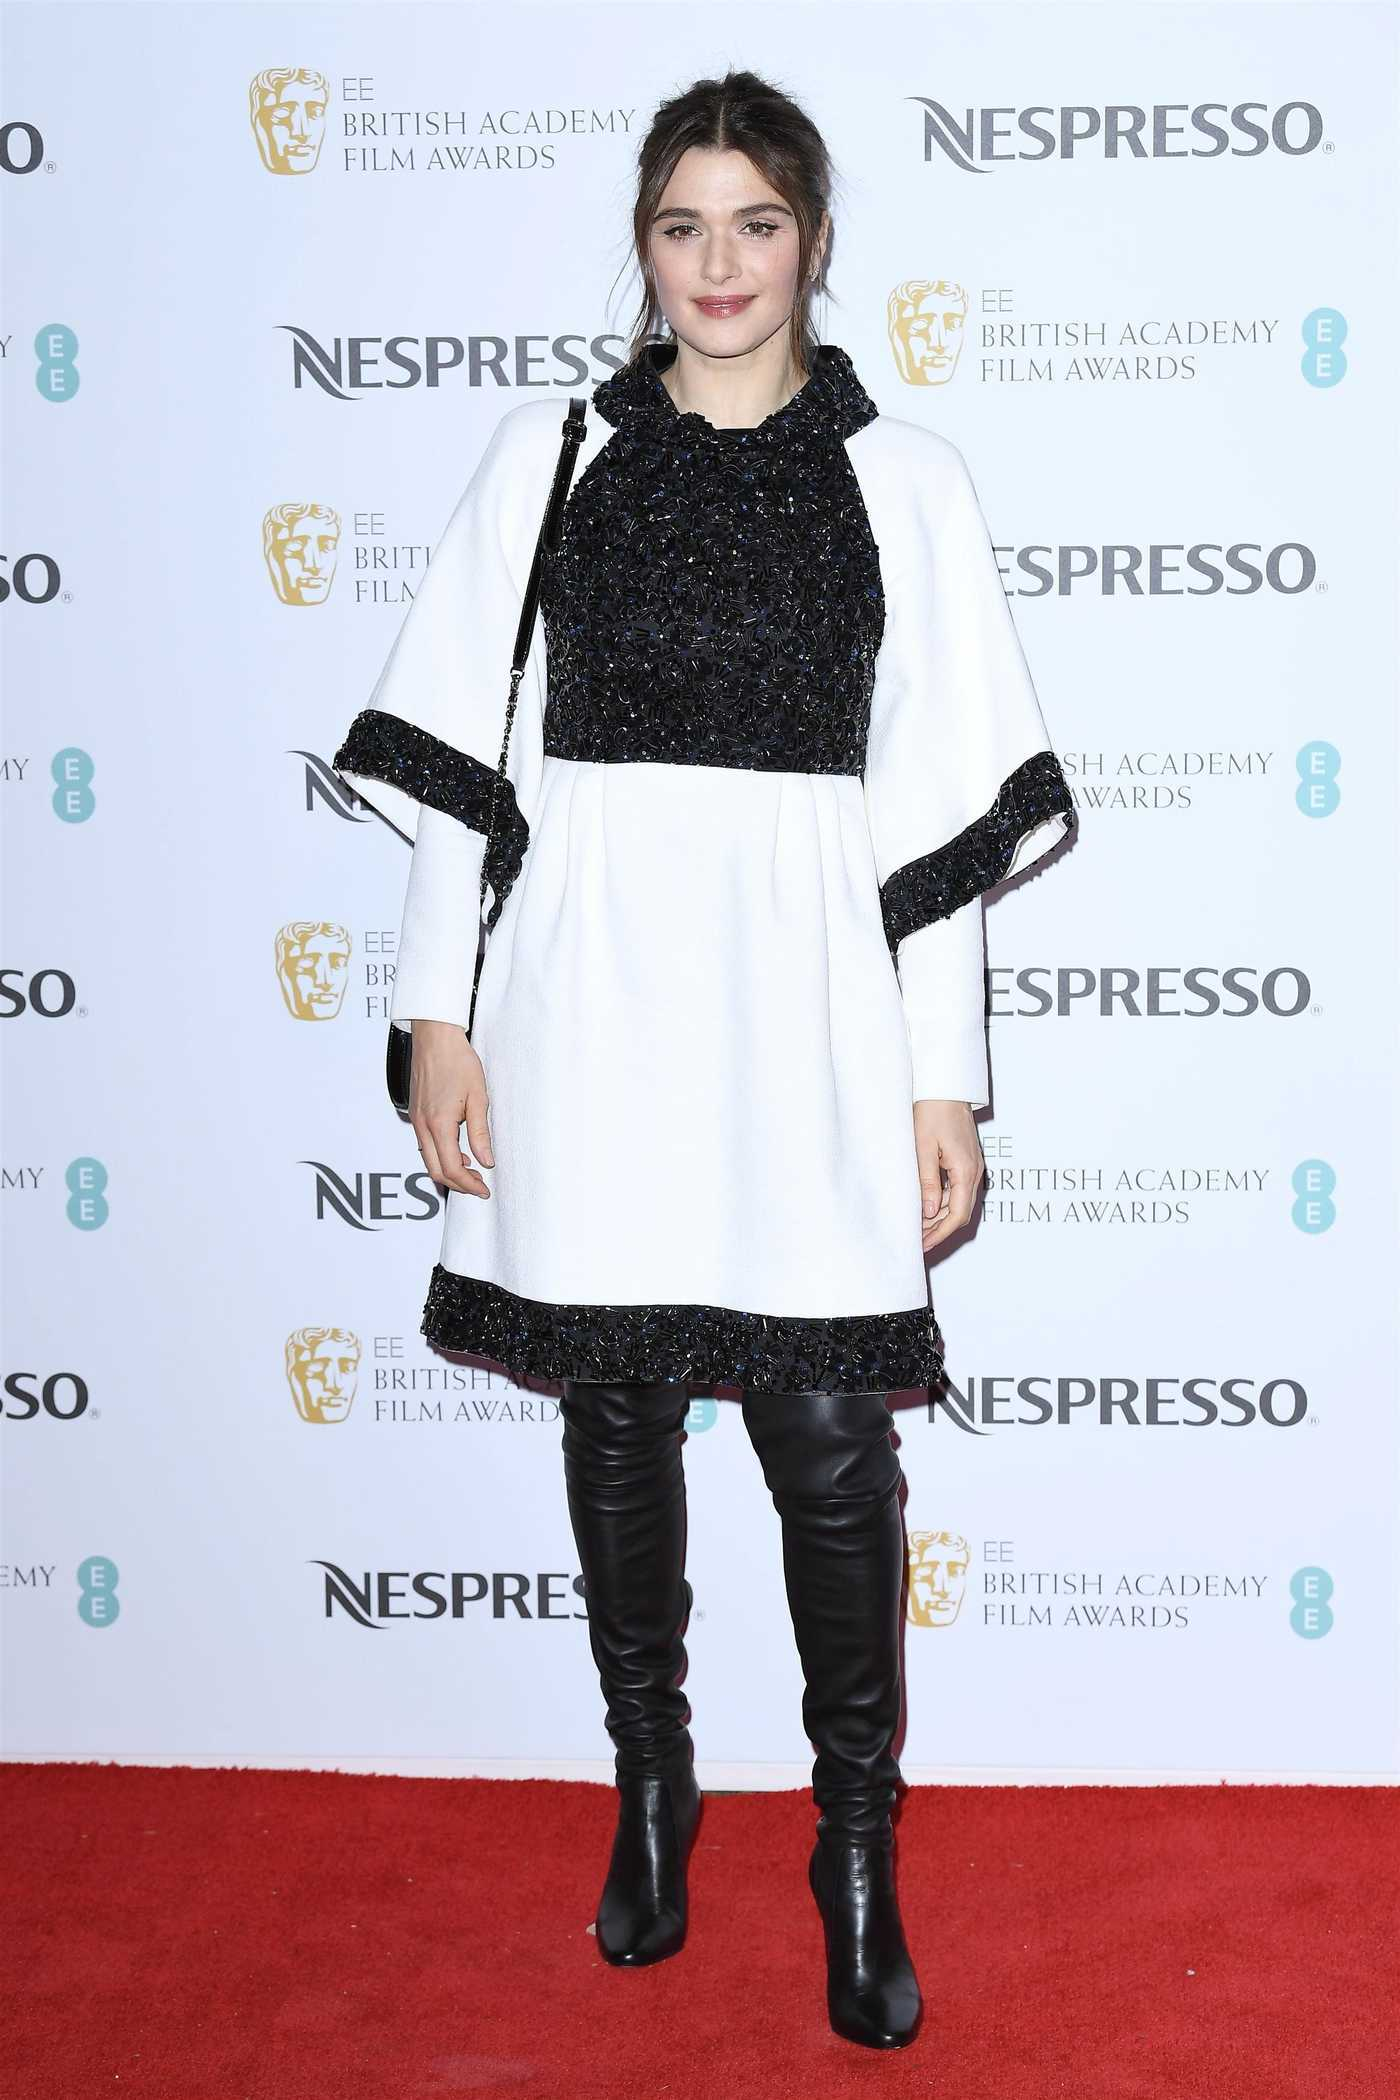 Rachel Weisz Attends 2019 BAFTA Nespresso Nominees Party in LA 02/09/2019